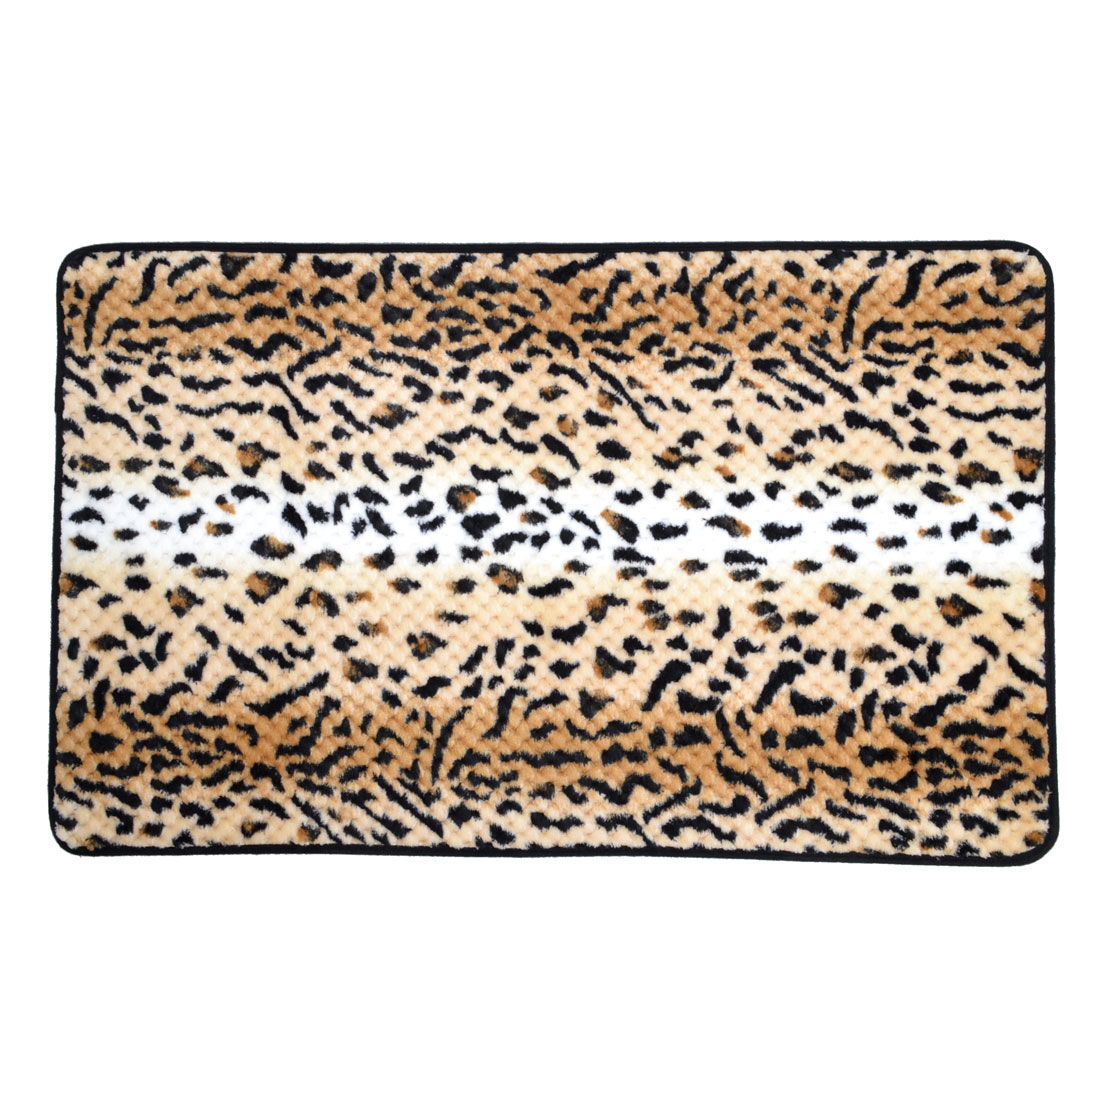 Brown Coral Fleece Leopard Pattern Kitchen Floor Area Rug Carpet 80cm x 50cm